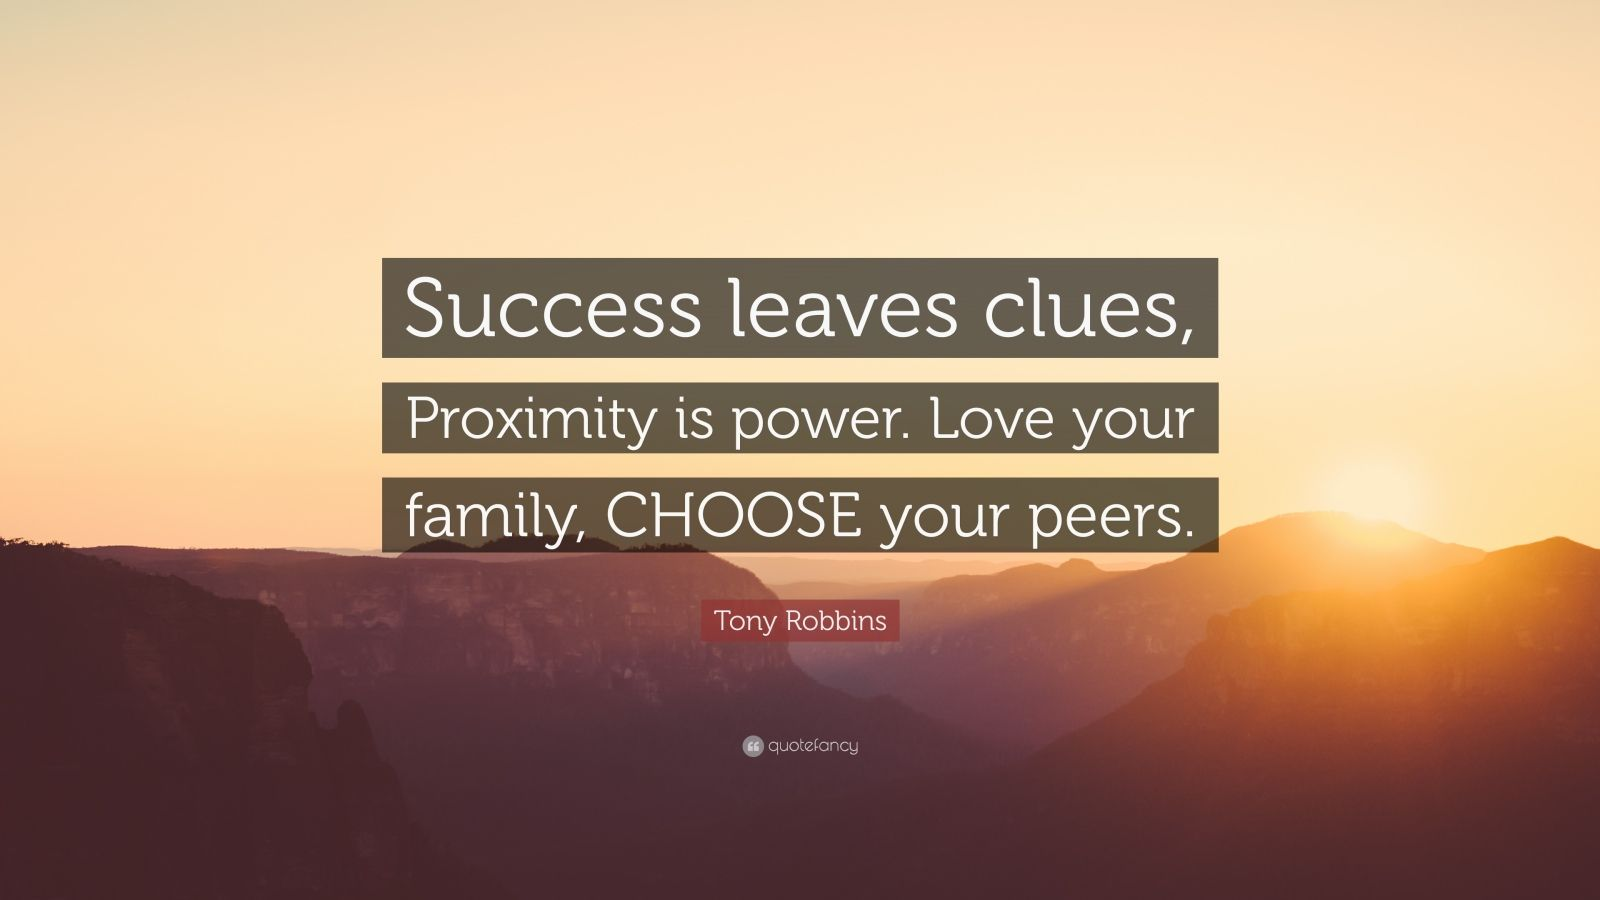 """Tony Robbins Quote: """"Success leaves clues, Proximity is power. Love your family, CHOOSE your peers."""""""